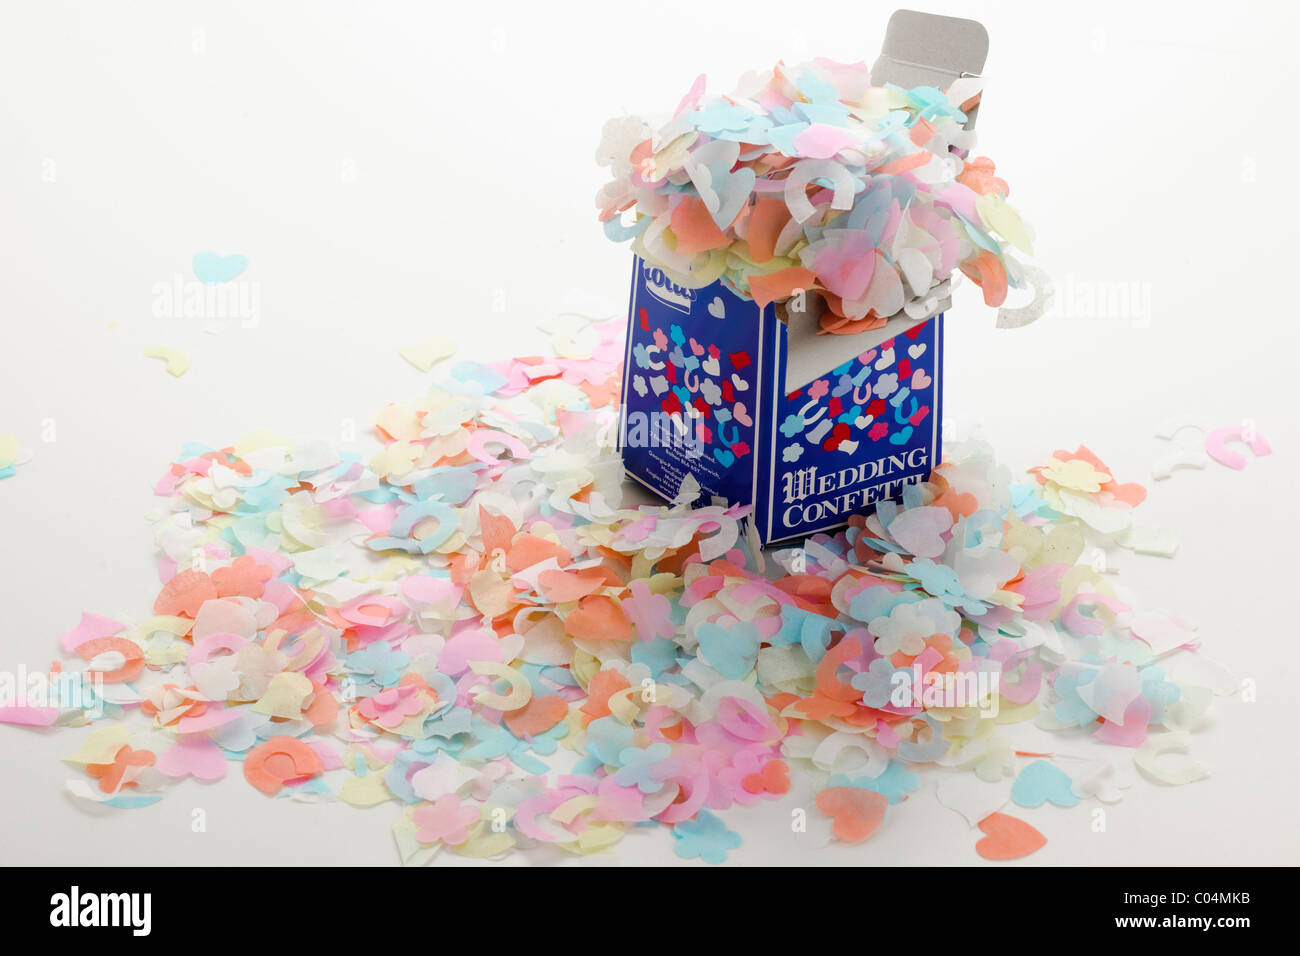 Pile of wedding confetti spilling from a box - Stock Image